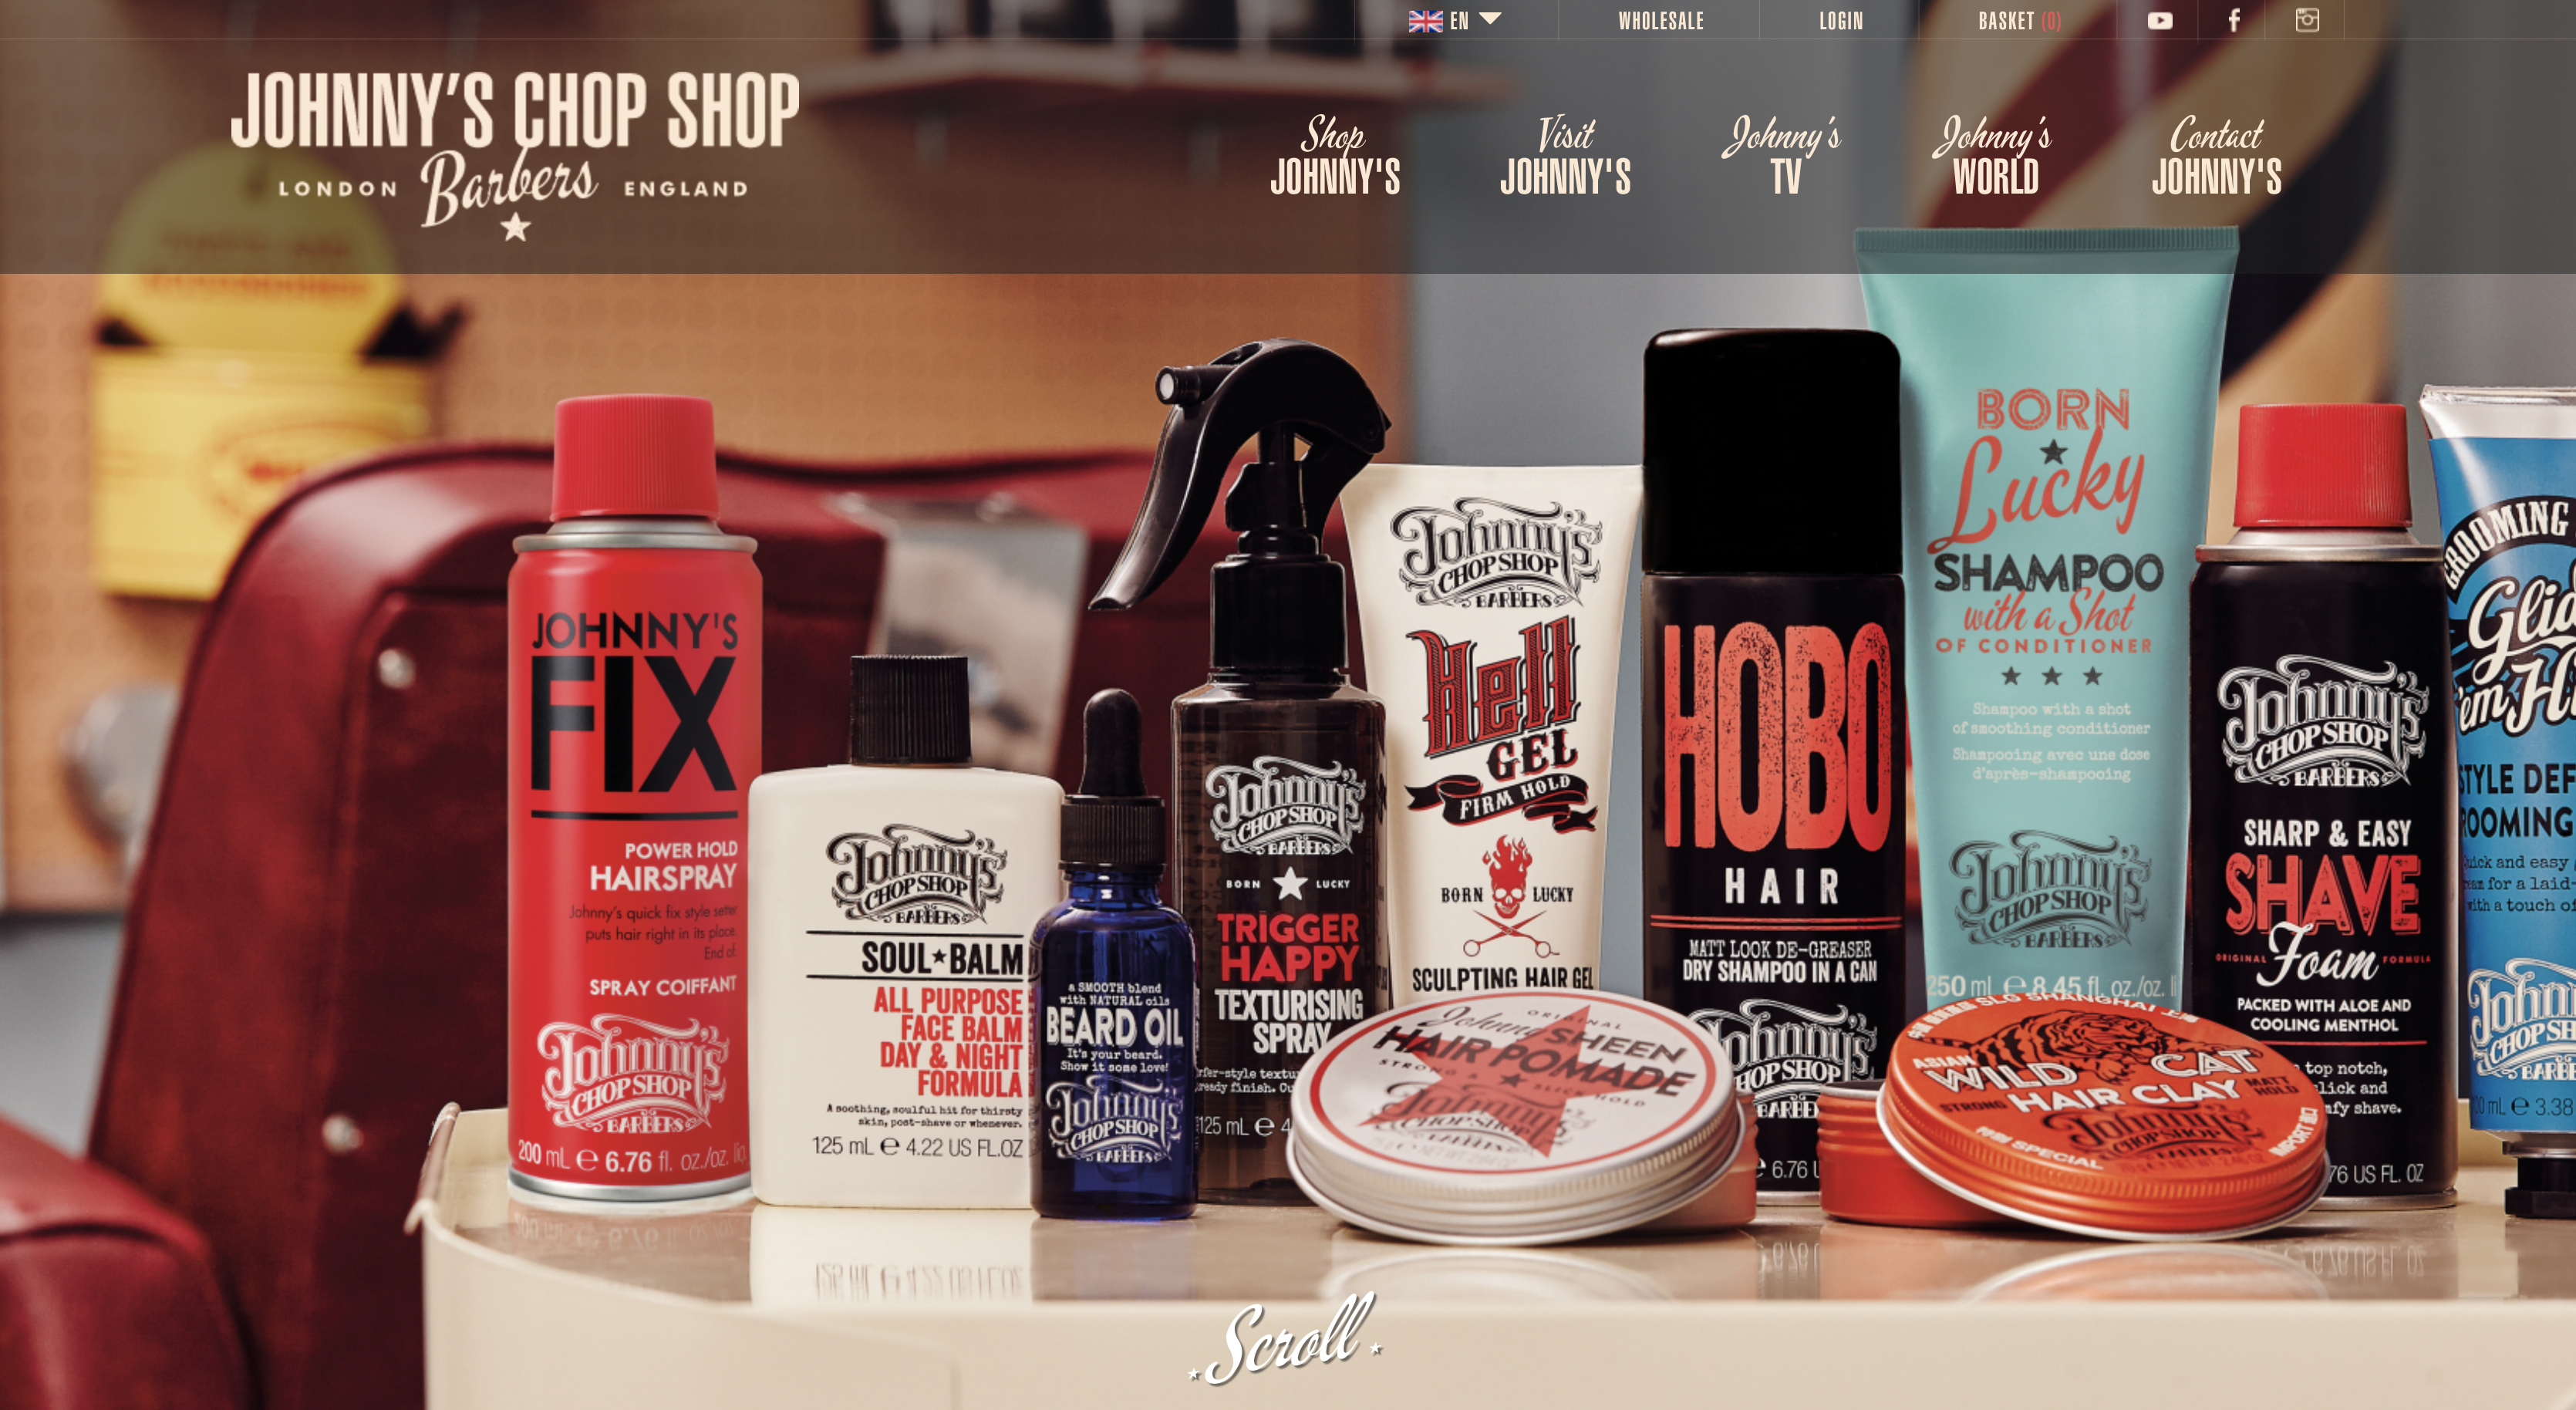 Johnny's Chop Shop men's grooming products now in South Africa